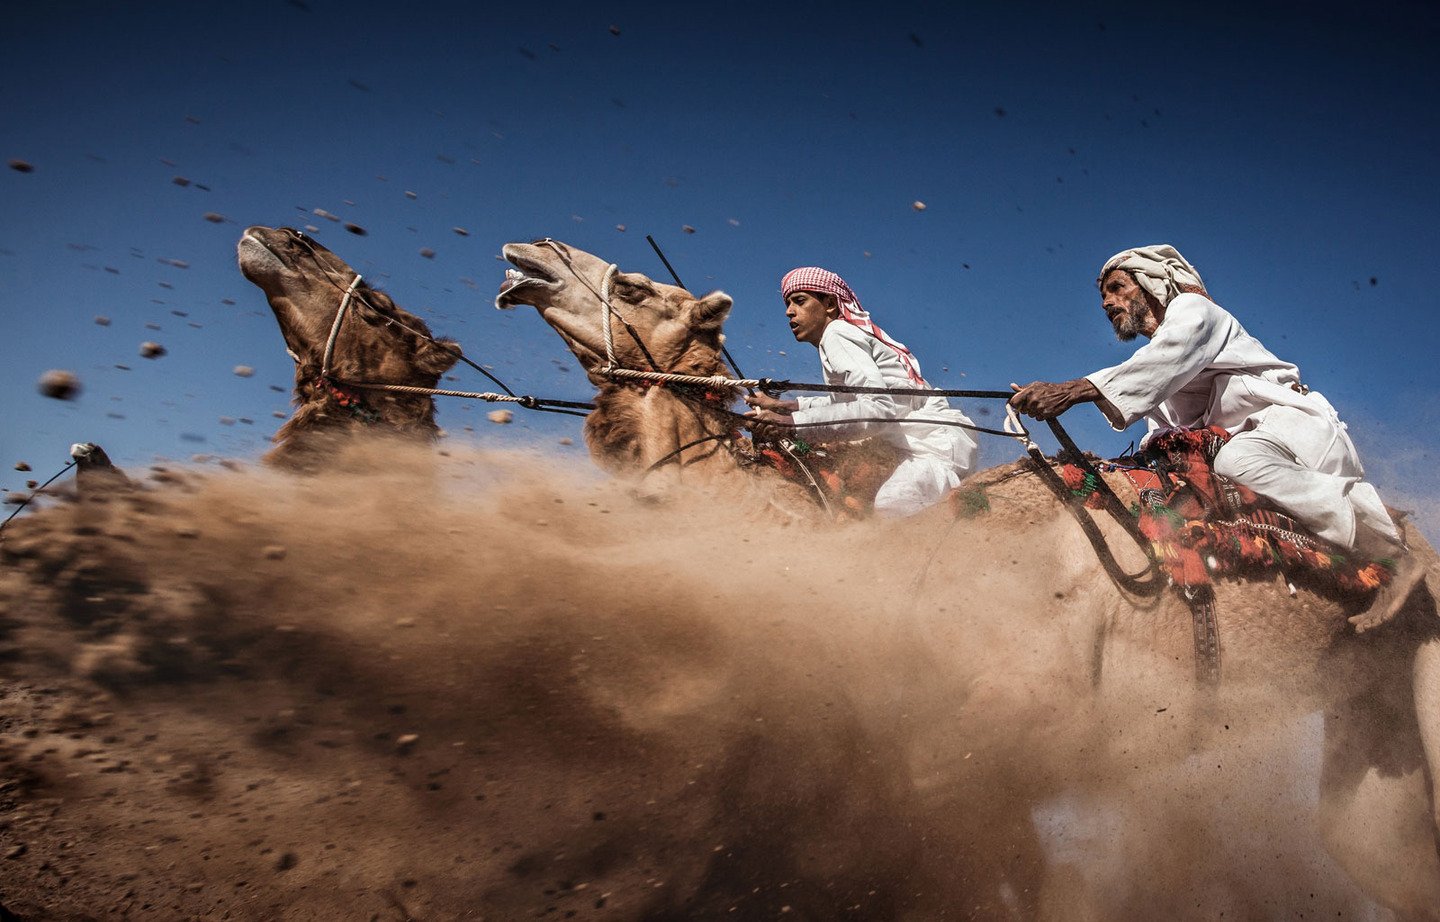 Third-Place-Ahmed-Al-Toqi-National-Geographic-Traveler-Photo-Contest-2015